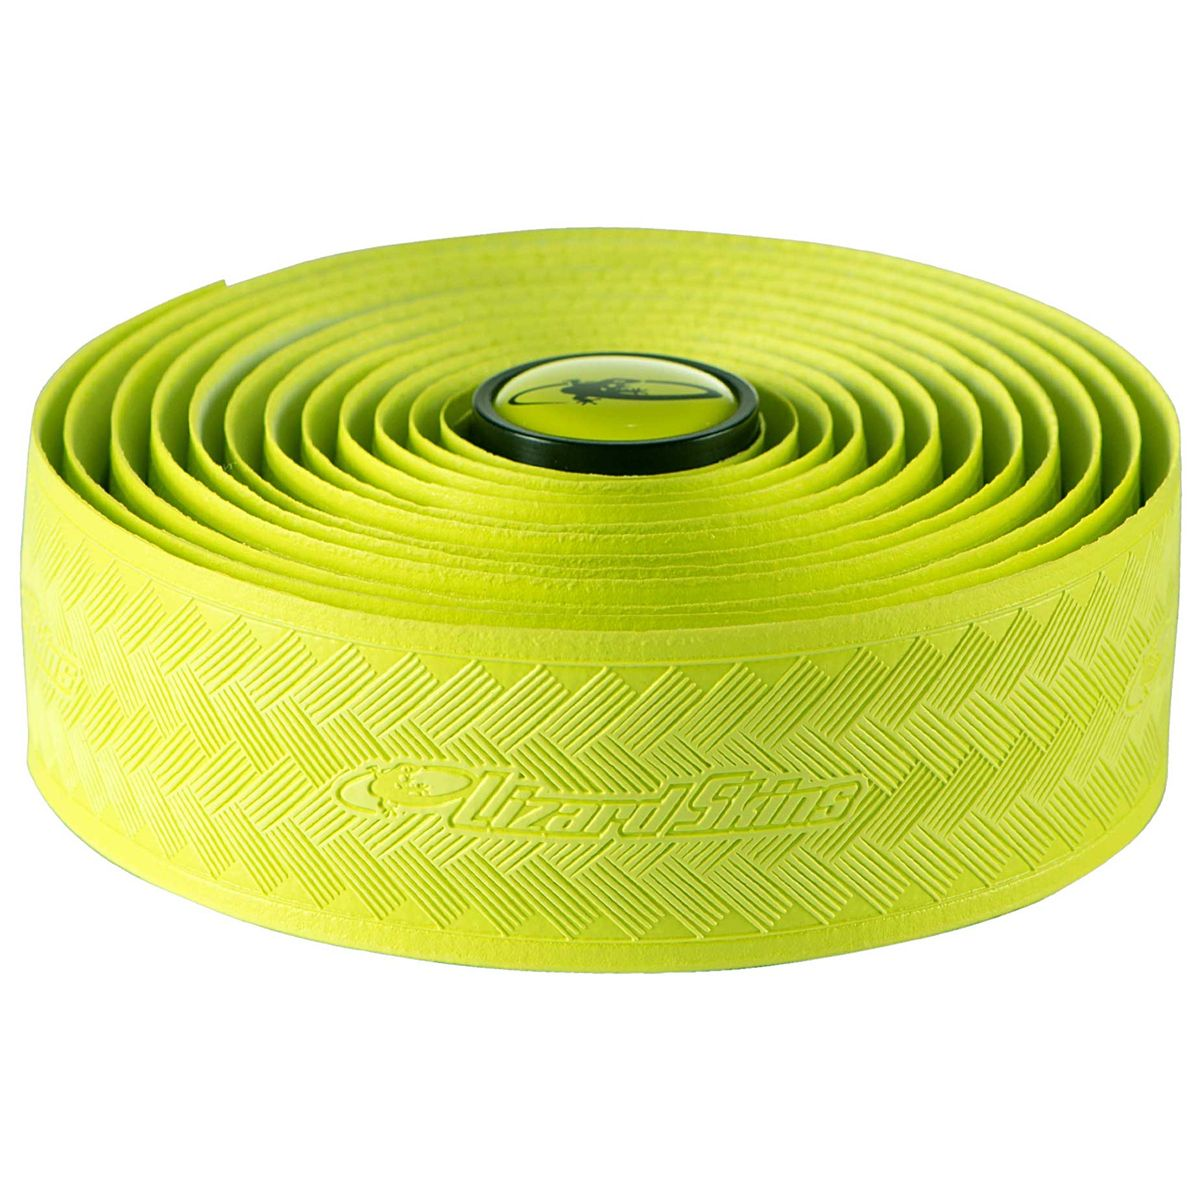 DSP 3,2 mm handlebar tape Road